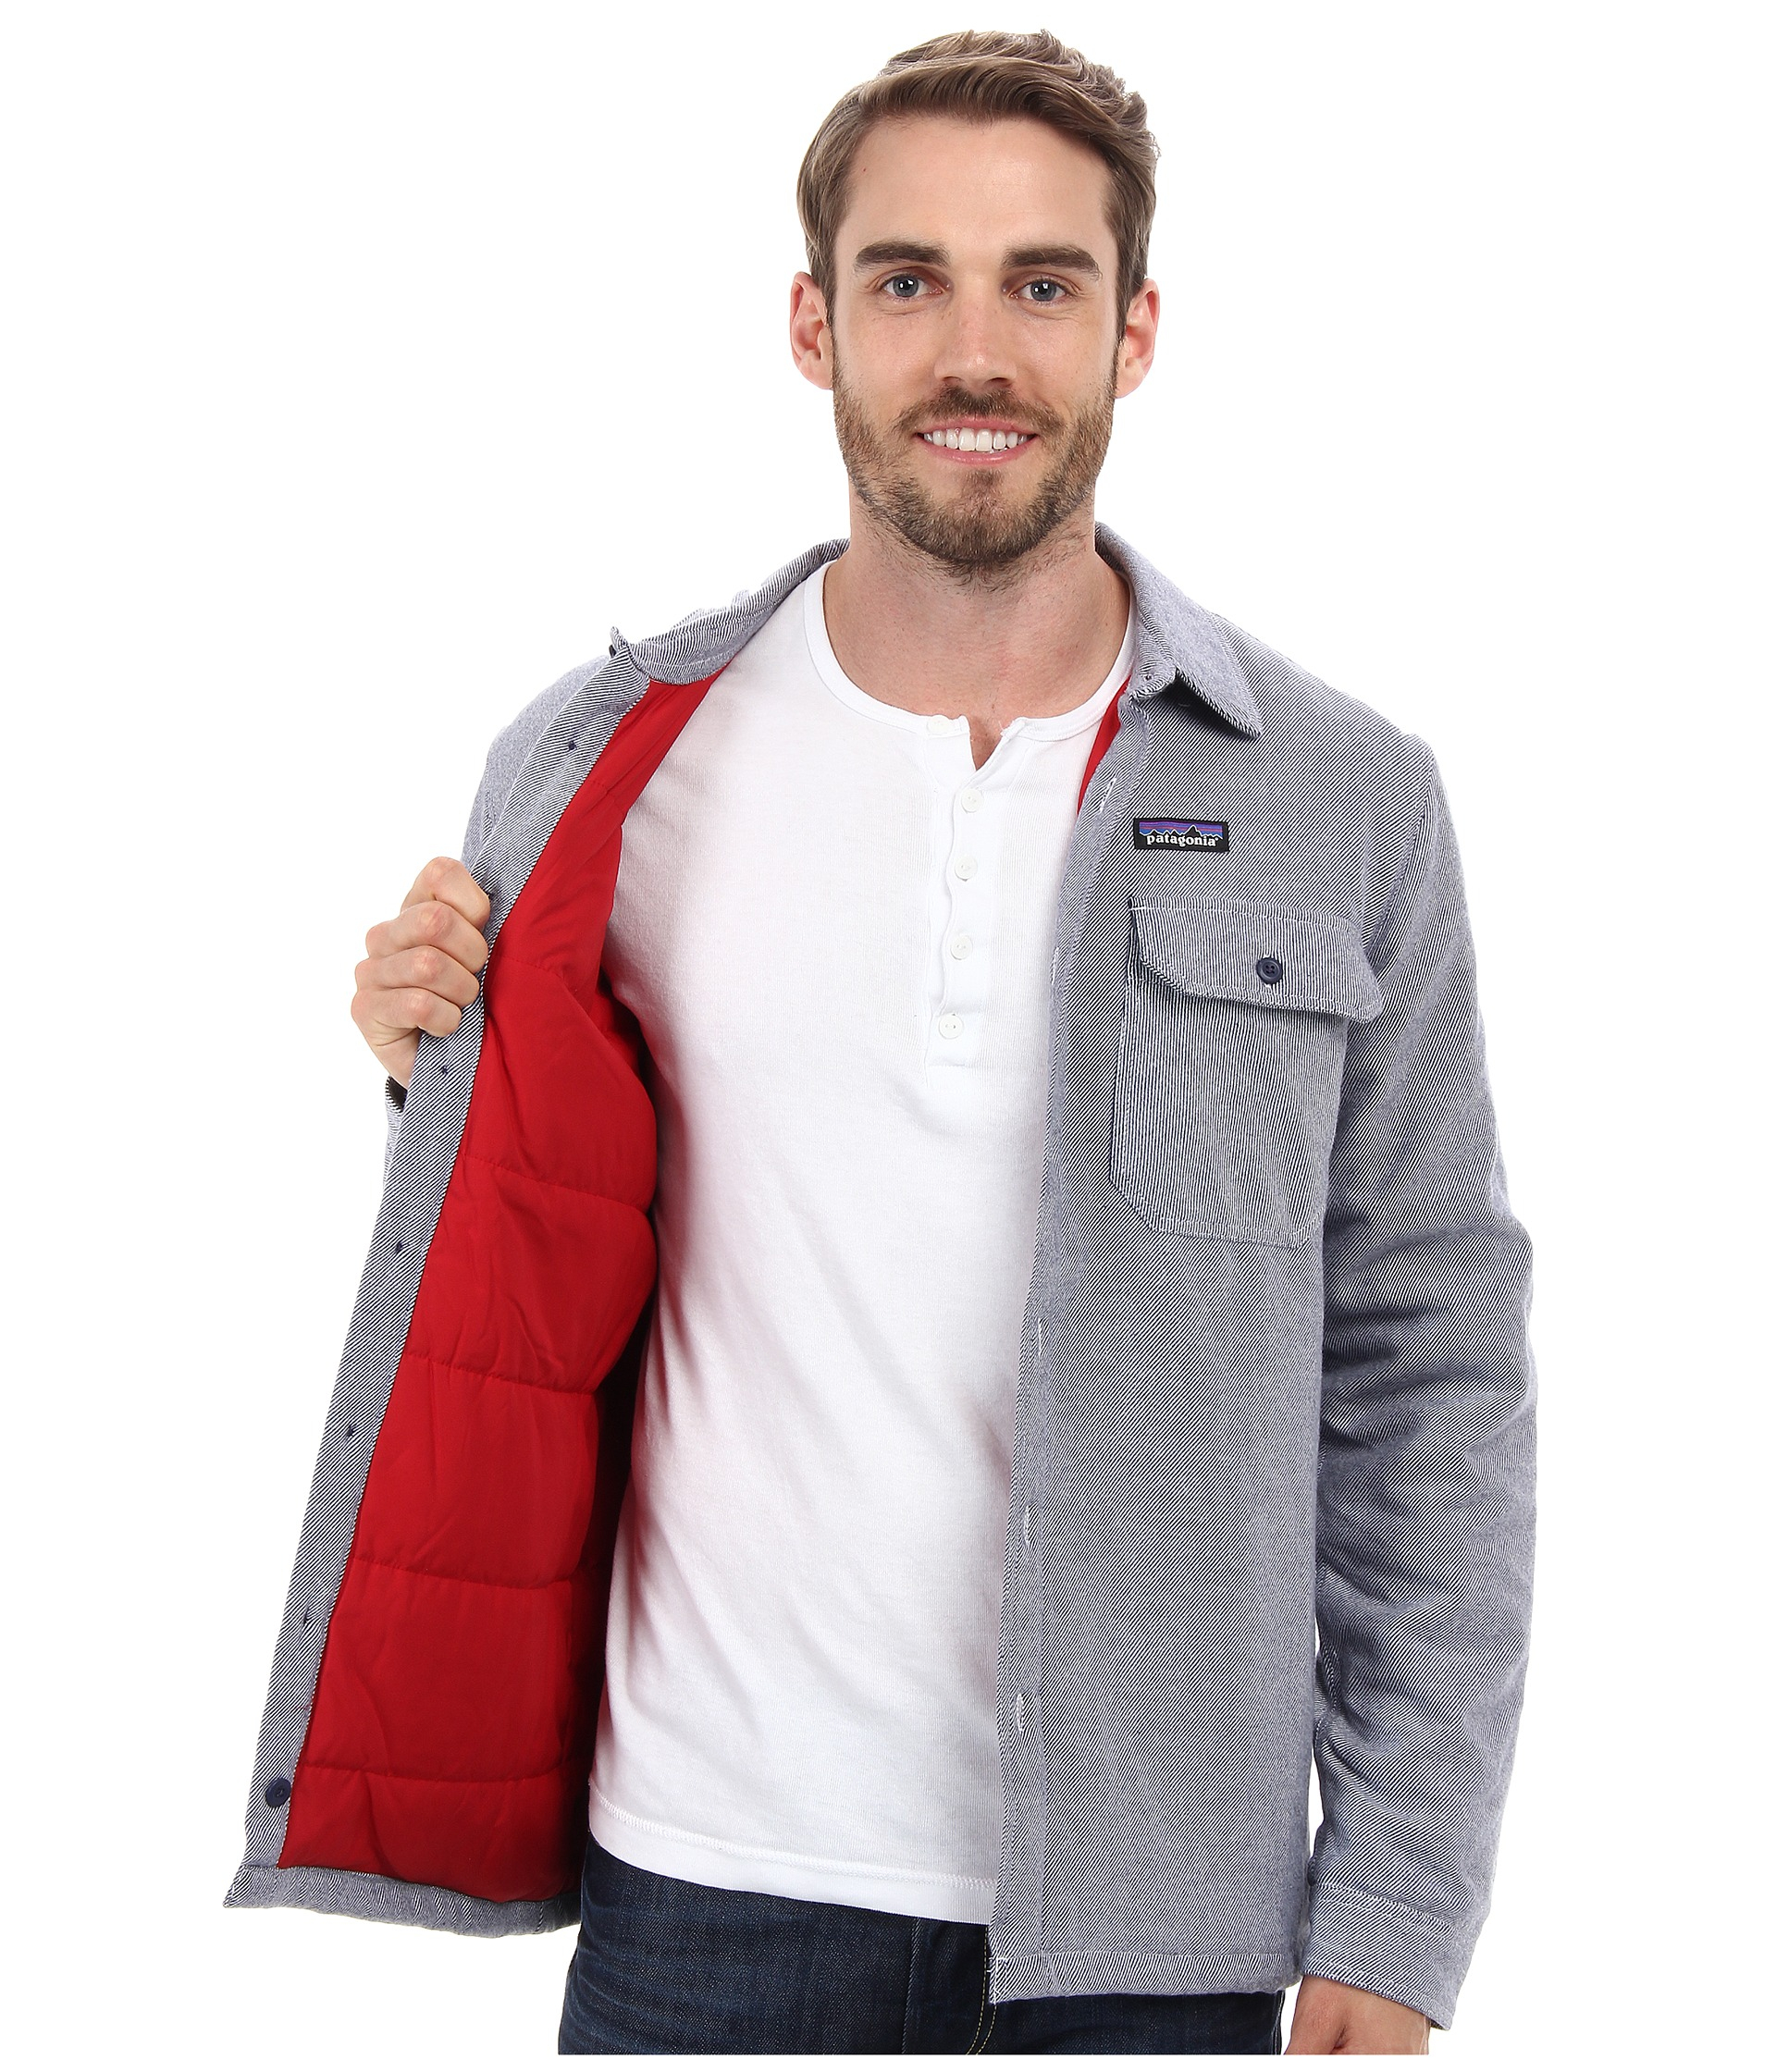 bfdcbfb81e9 Lyst - Patagonia Insulated Fjord Flannel Jacket in Blue for Men